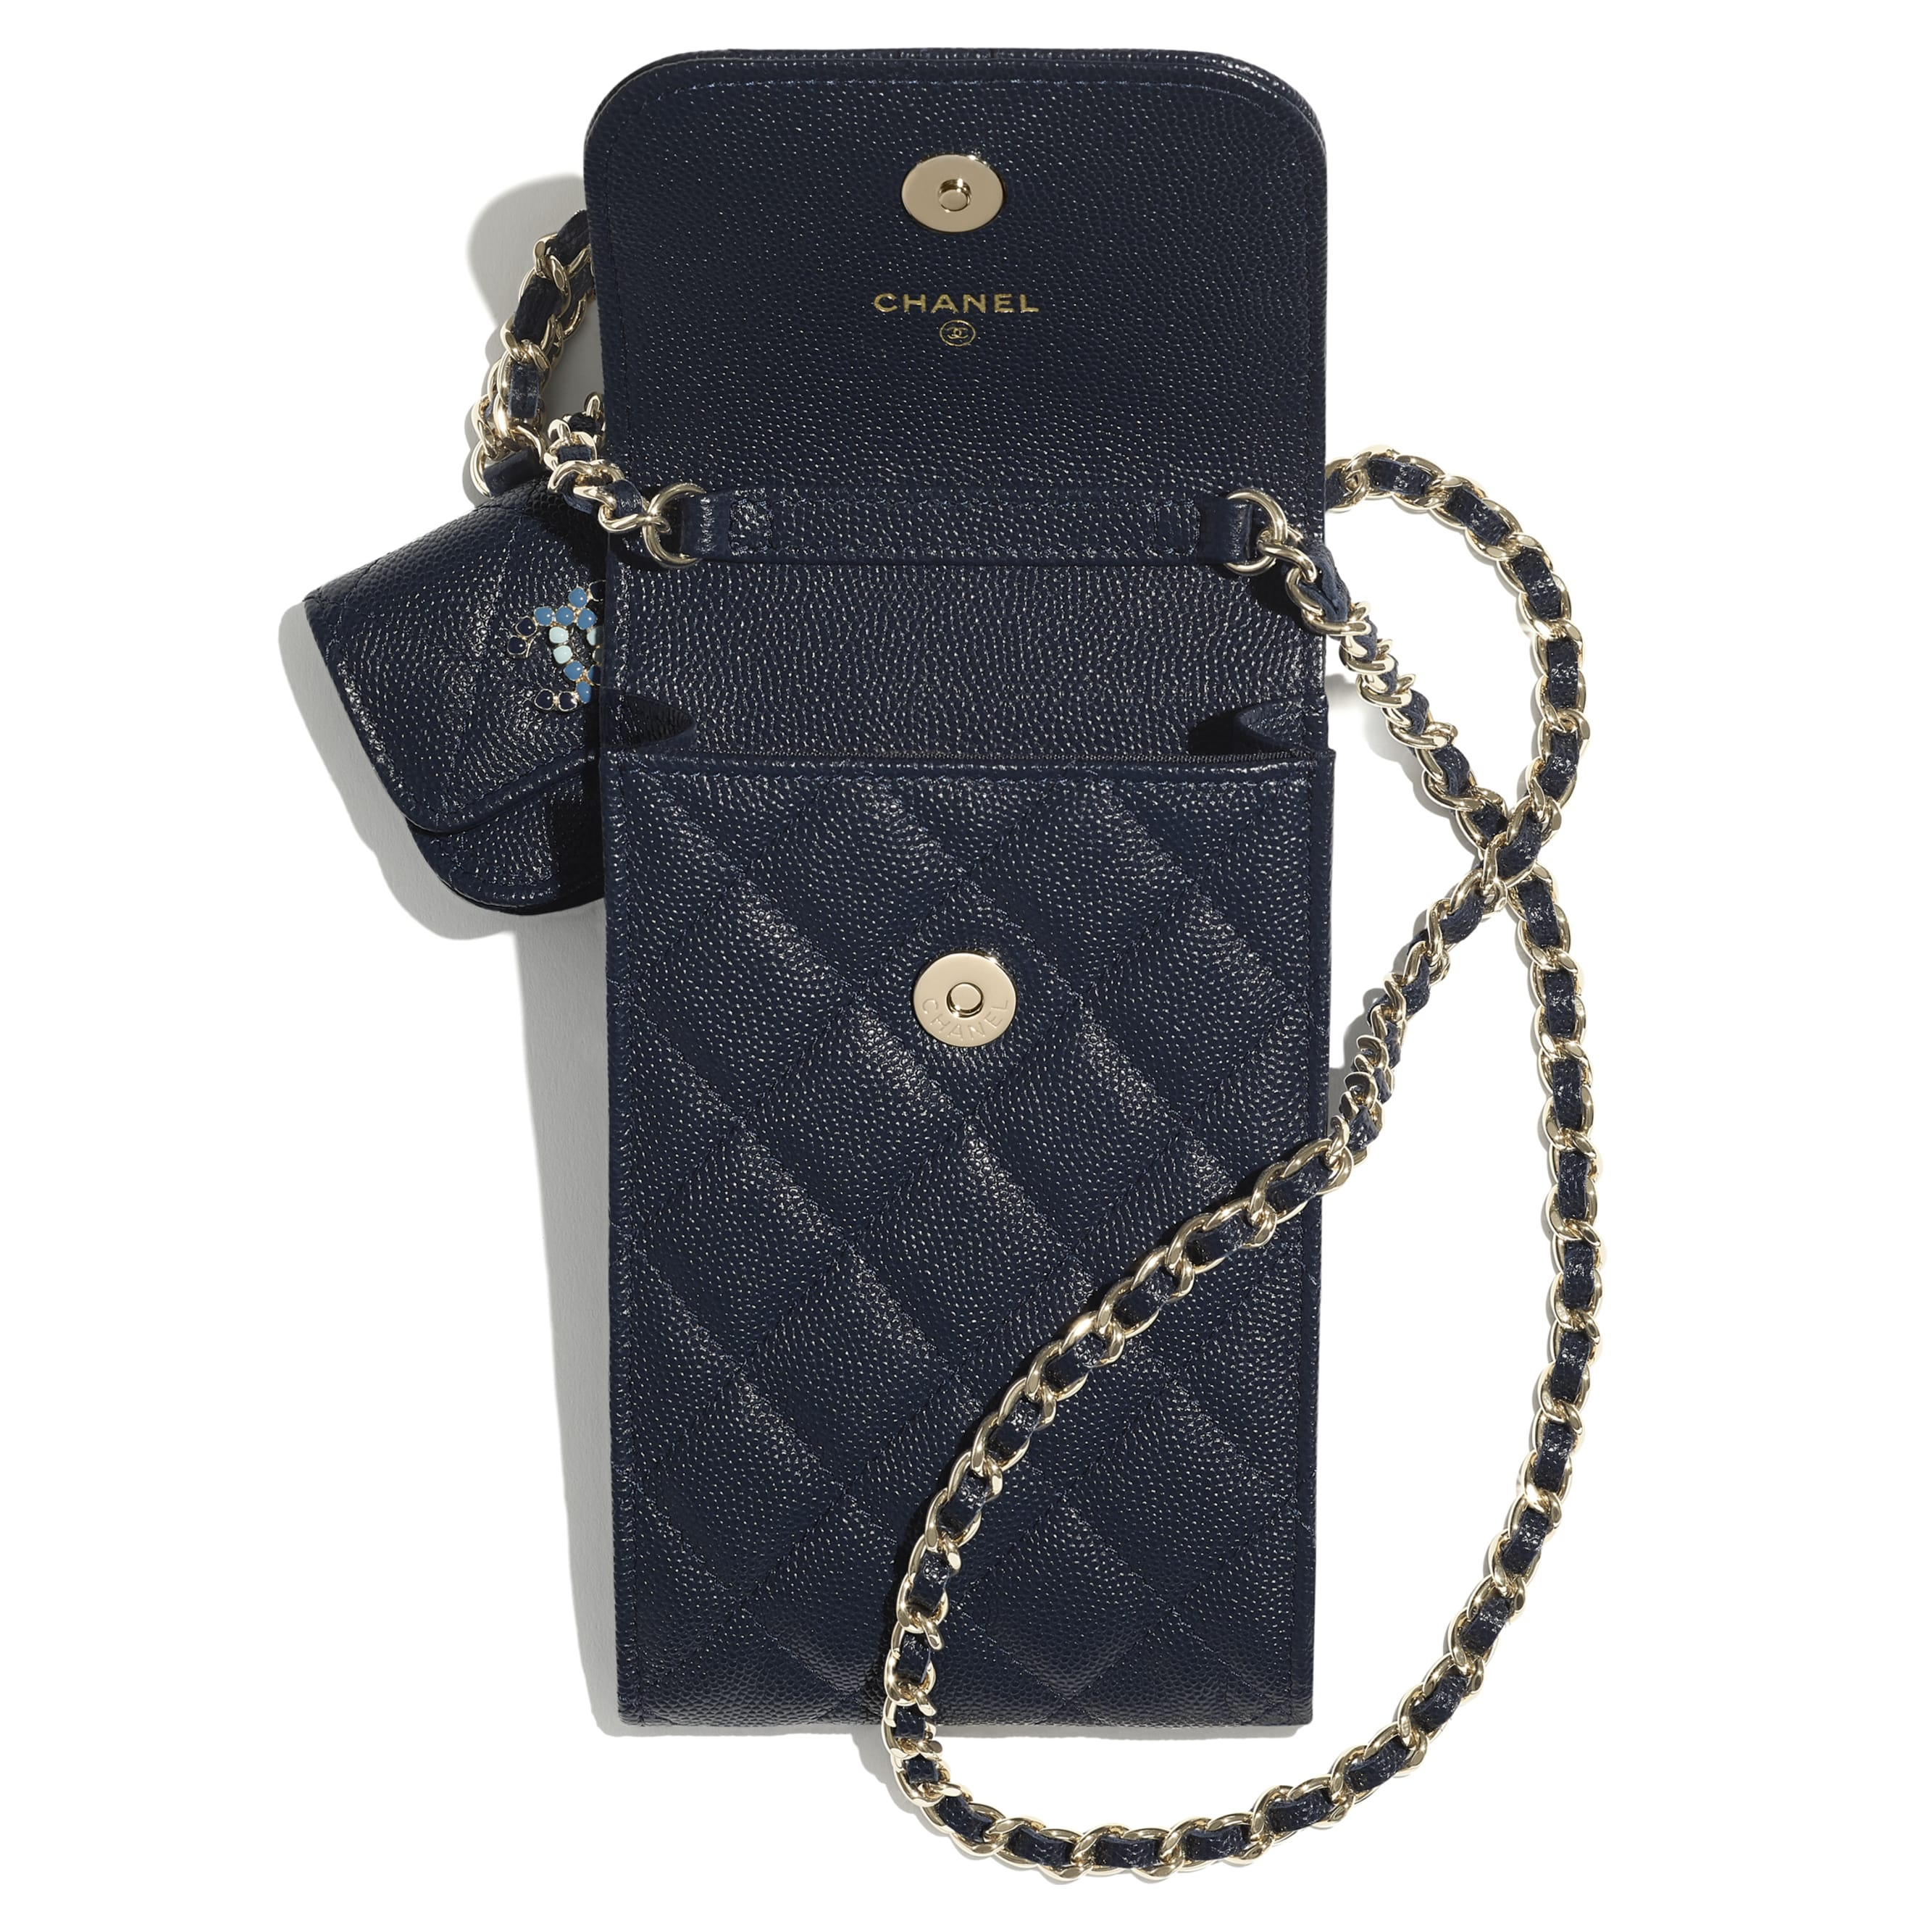 Phone & Airpods Case with Chain - Navy Blue - Grained Calfskin & Laquered Gold-Tone Metal - CHANEL - Alternative view - see standard sized version